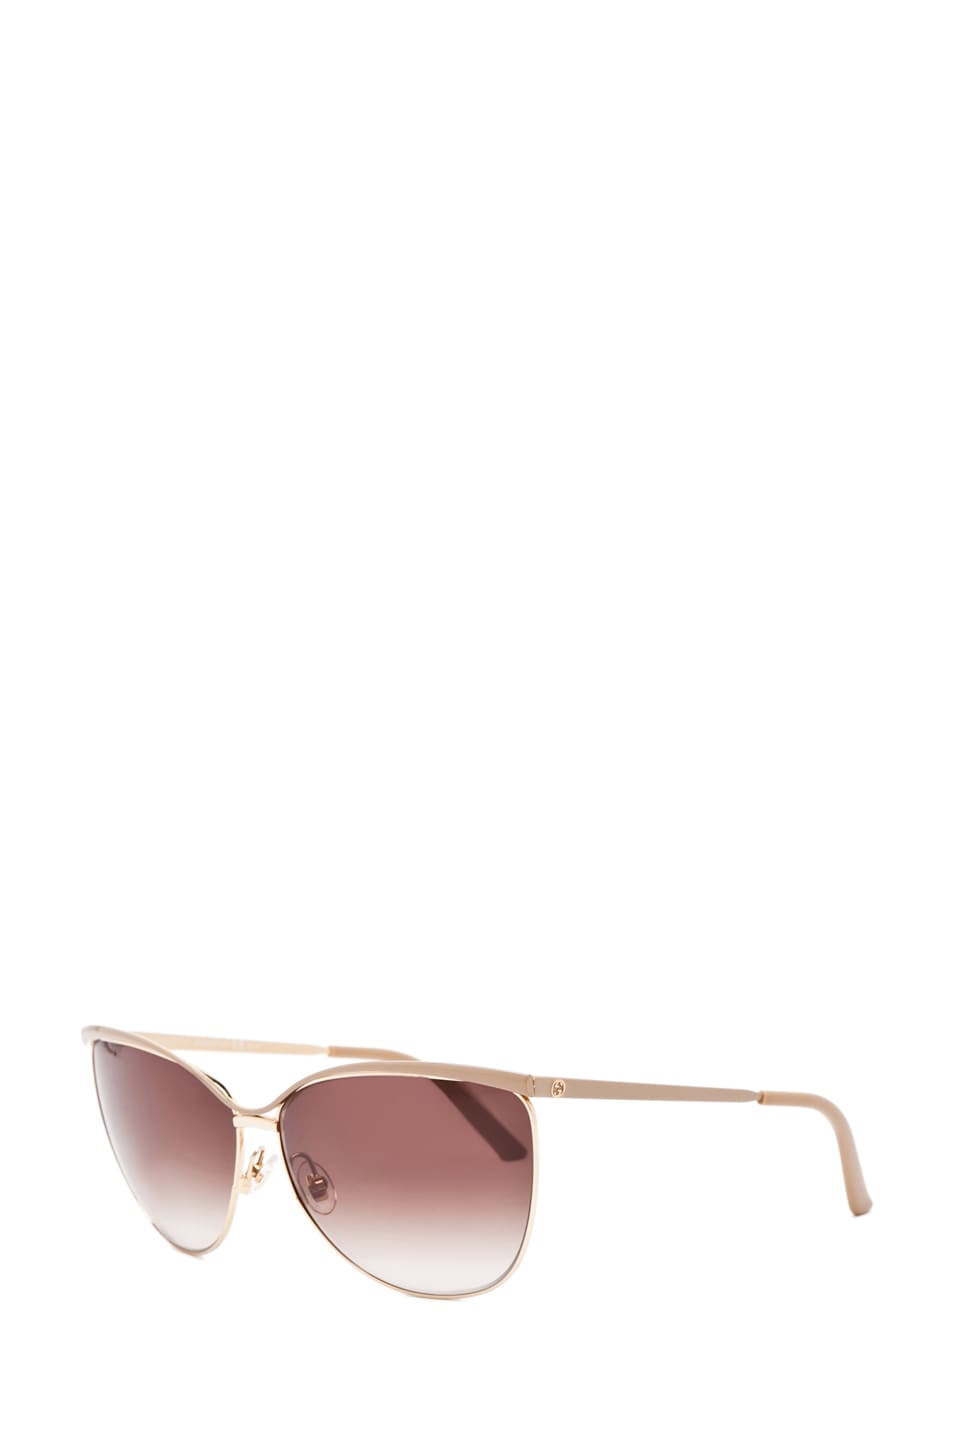 Image 2 of Gucci 2891/S in Caramel Rose Gold with Gray Gradient Lens